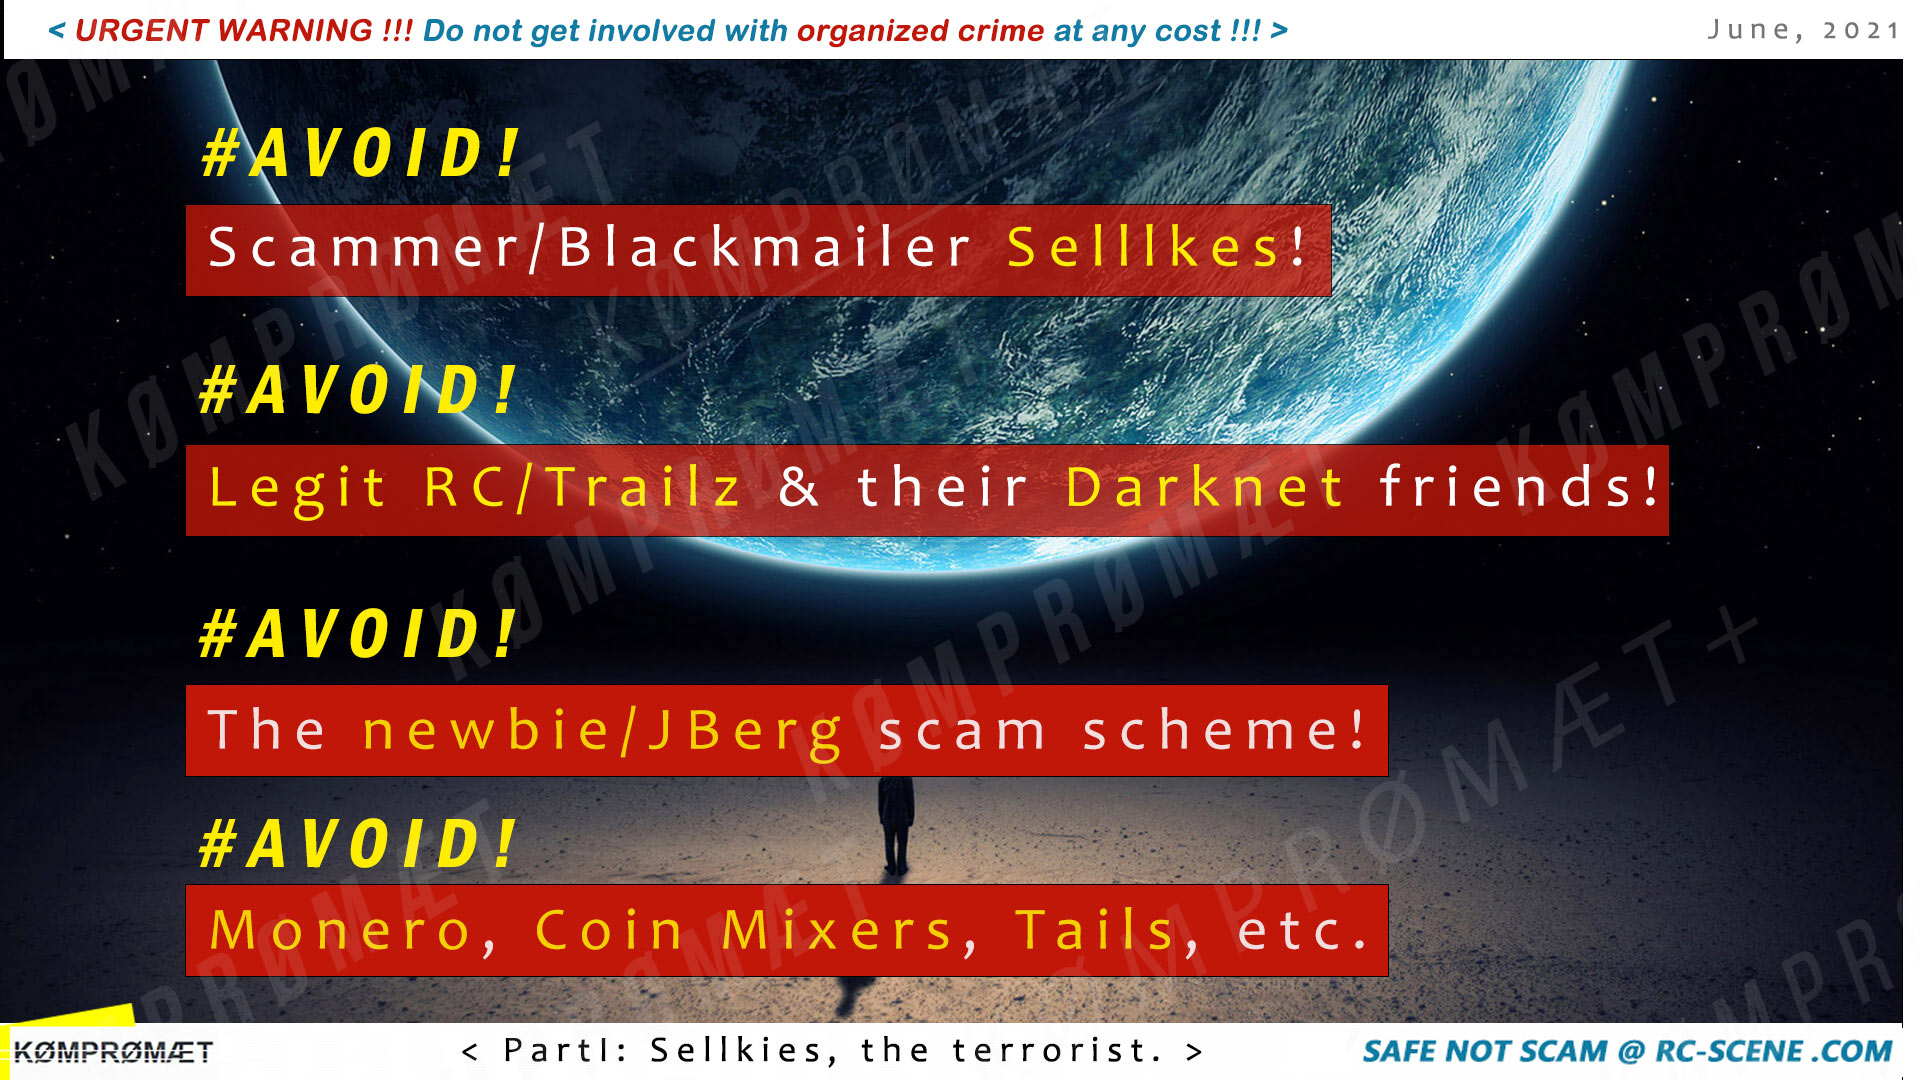 Urgent warning: Avoid the Darknet and Organized Crime! Part 1: Scammer Sellkies (Seek Sanctuary). Avoid scammers! Avoid organized crime! Avoid the newbie/JBerg scam scheme! Avoid Monero, Tails, Coin Mixers, Tails, and many more.